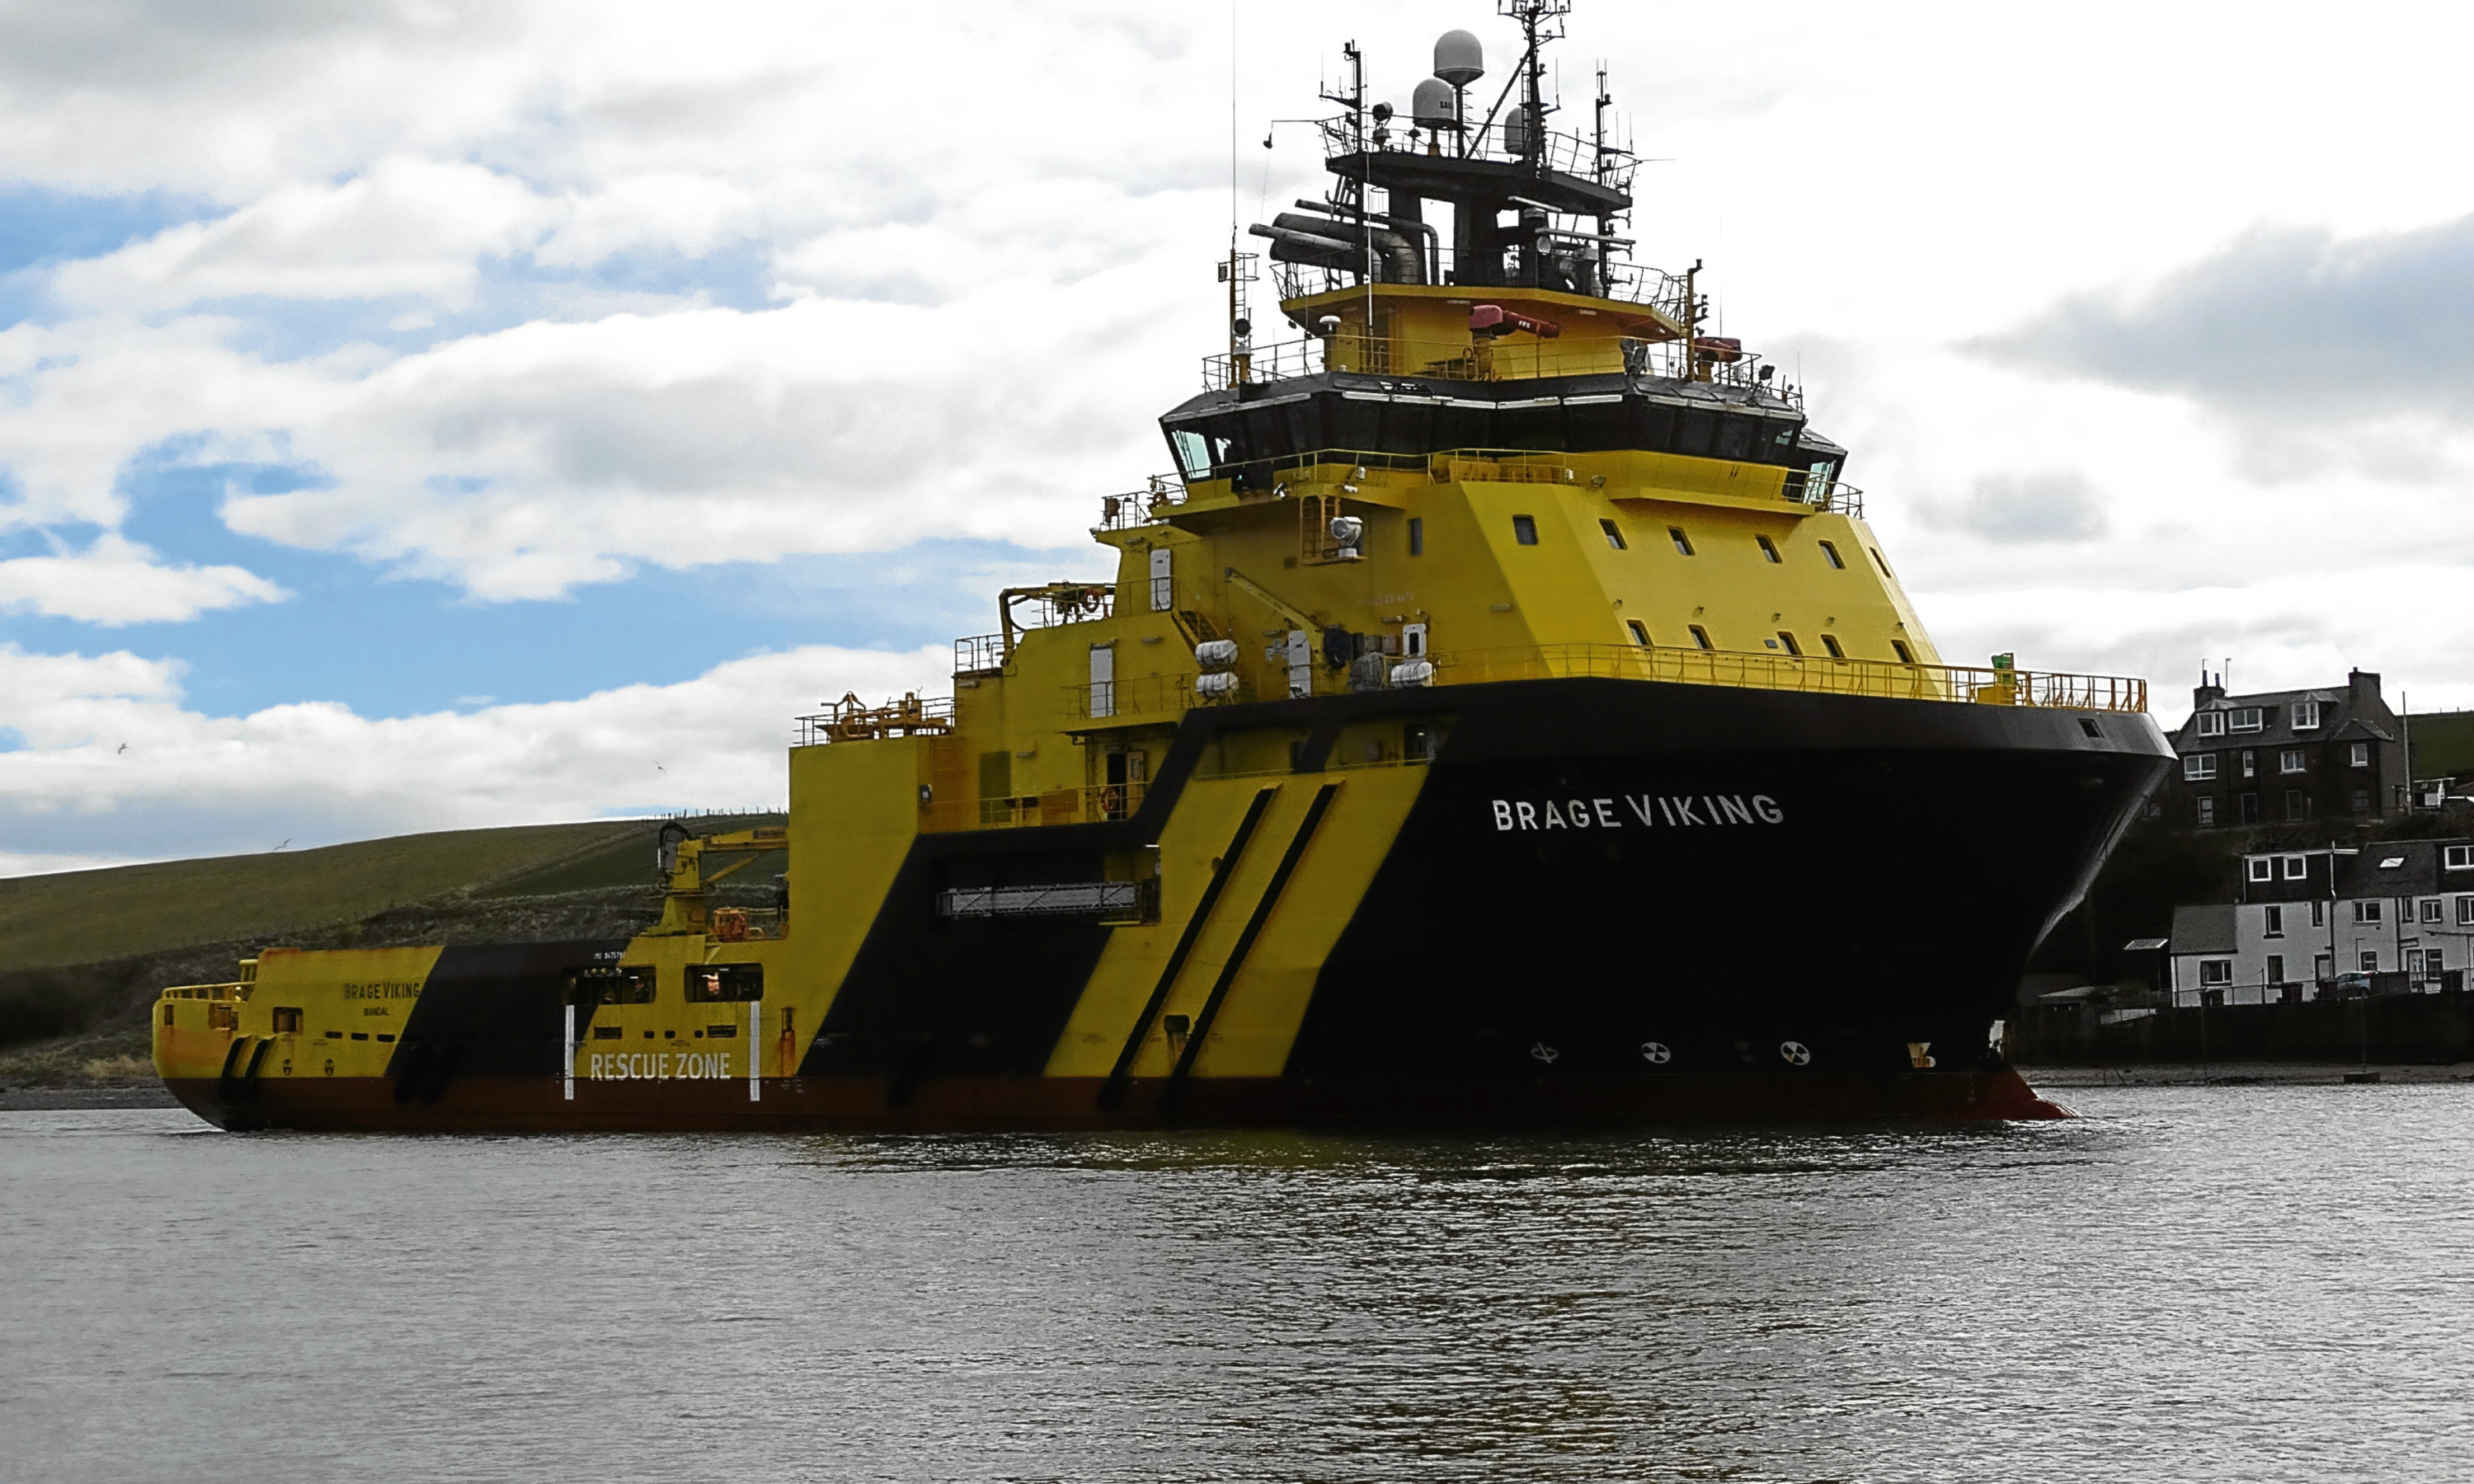 The Brage Viking about to enter Montrose Port. The port authority hopes new quayside upgrades will attract more vessels into the harbour.